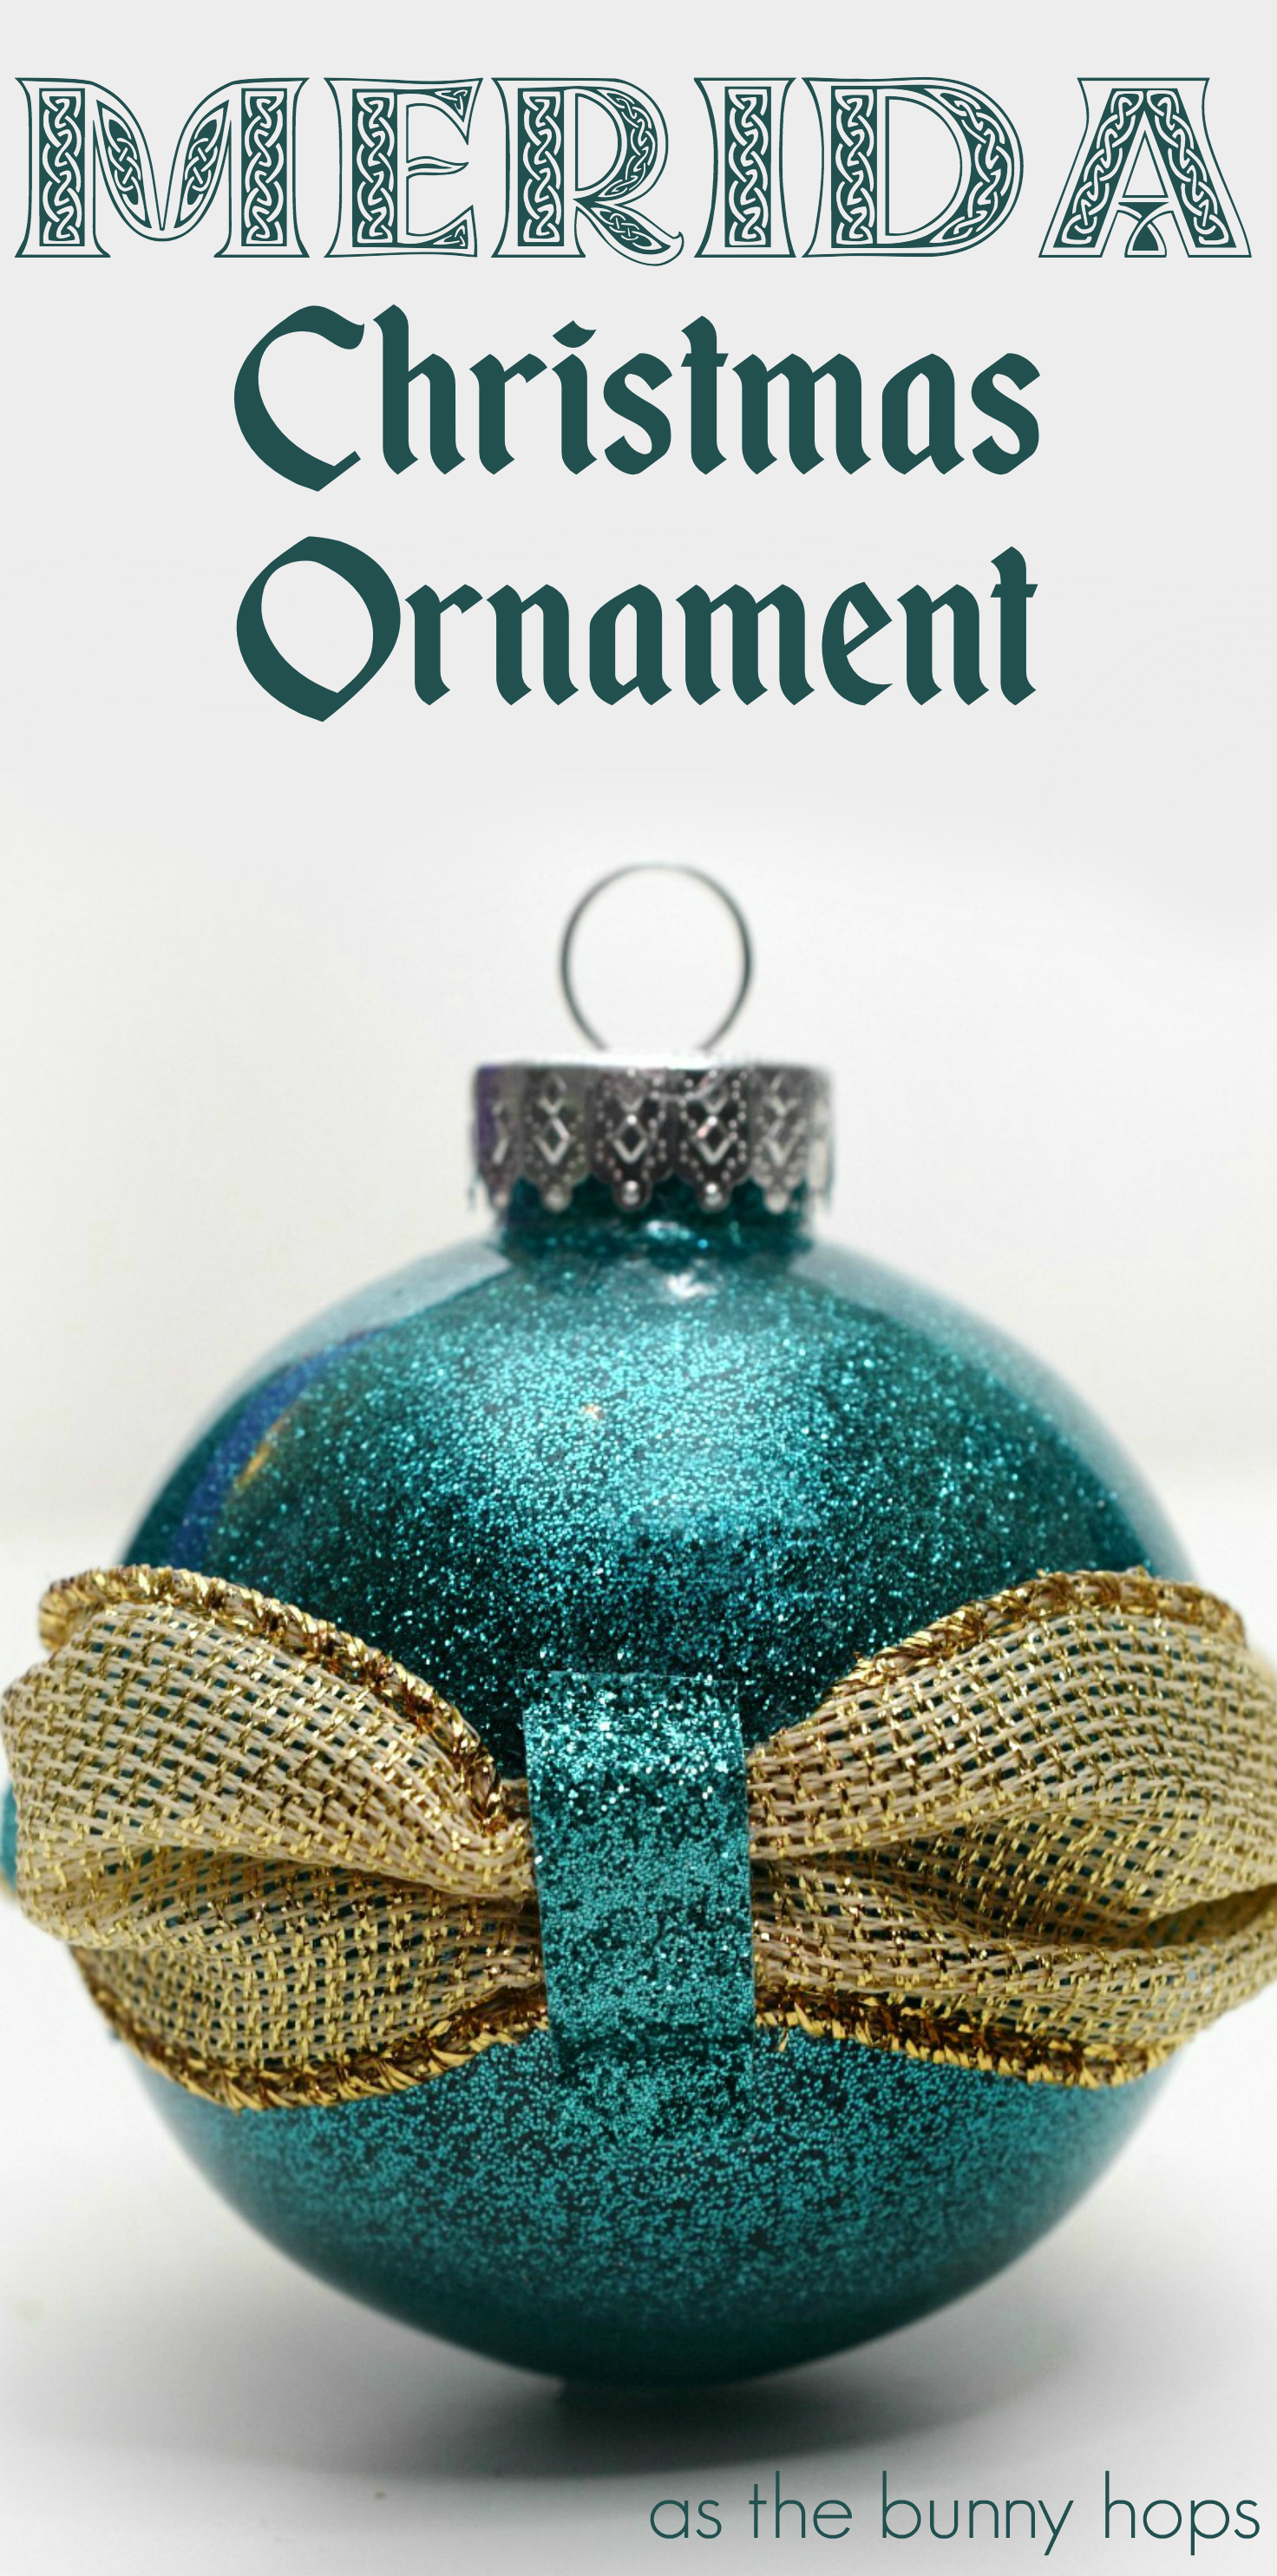 Personalized Christmas Ornament Personalized Disney Ornament Kids Ornament Merida Christmas Ornament Disney Christmas Ornament